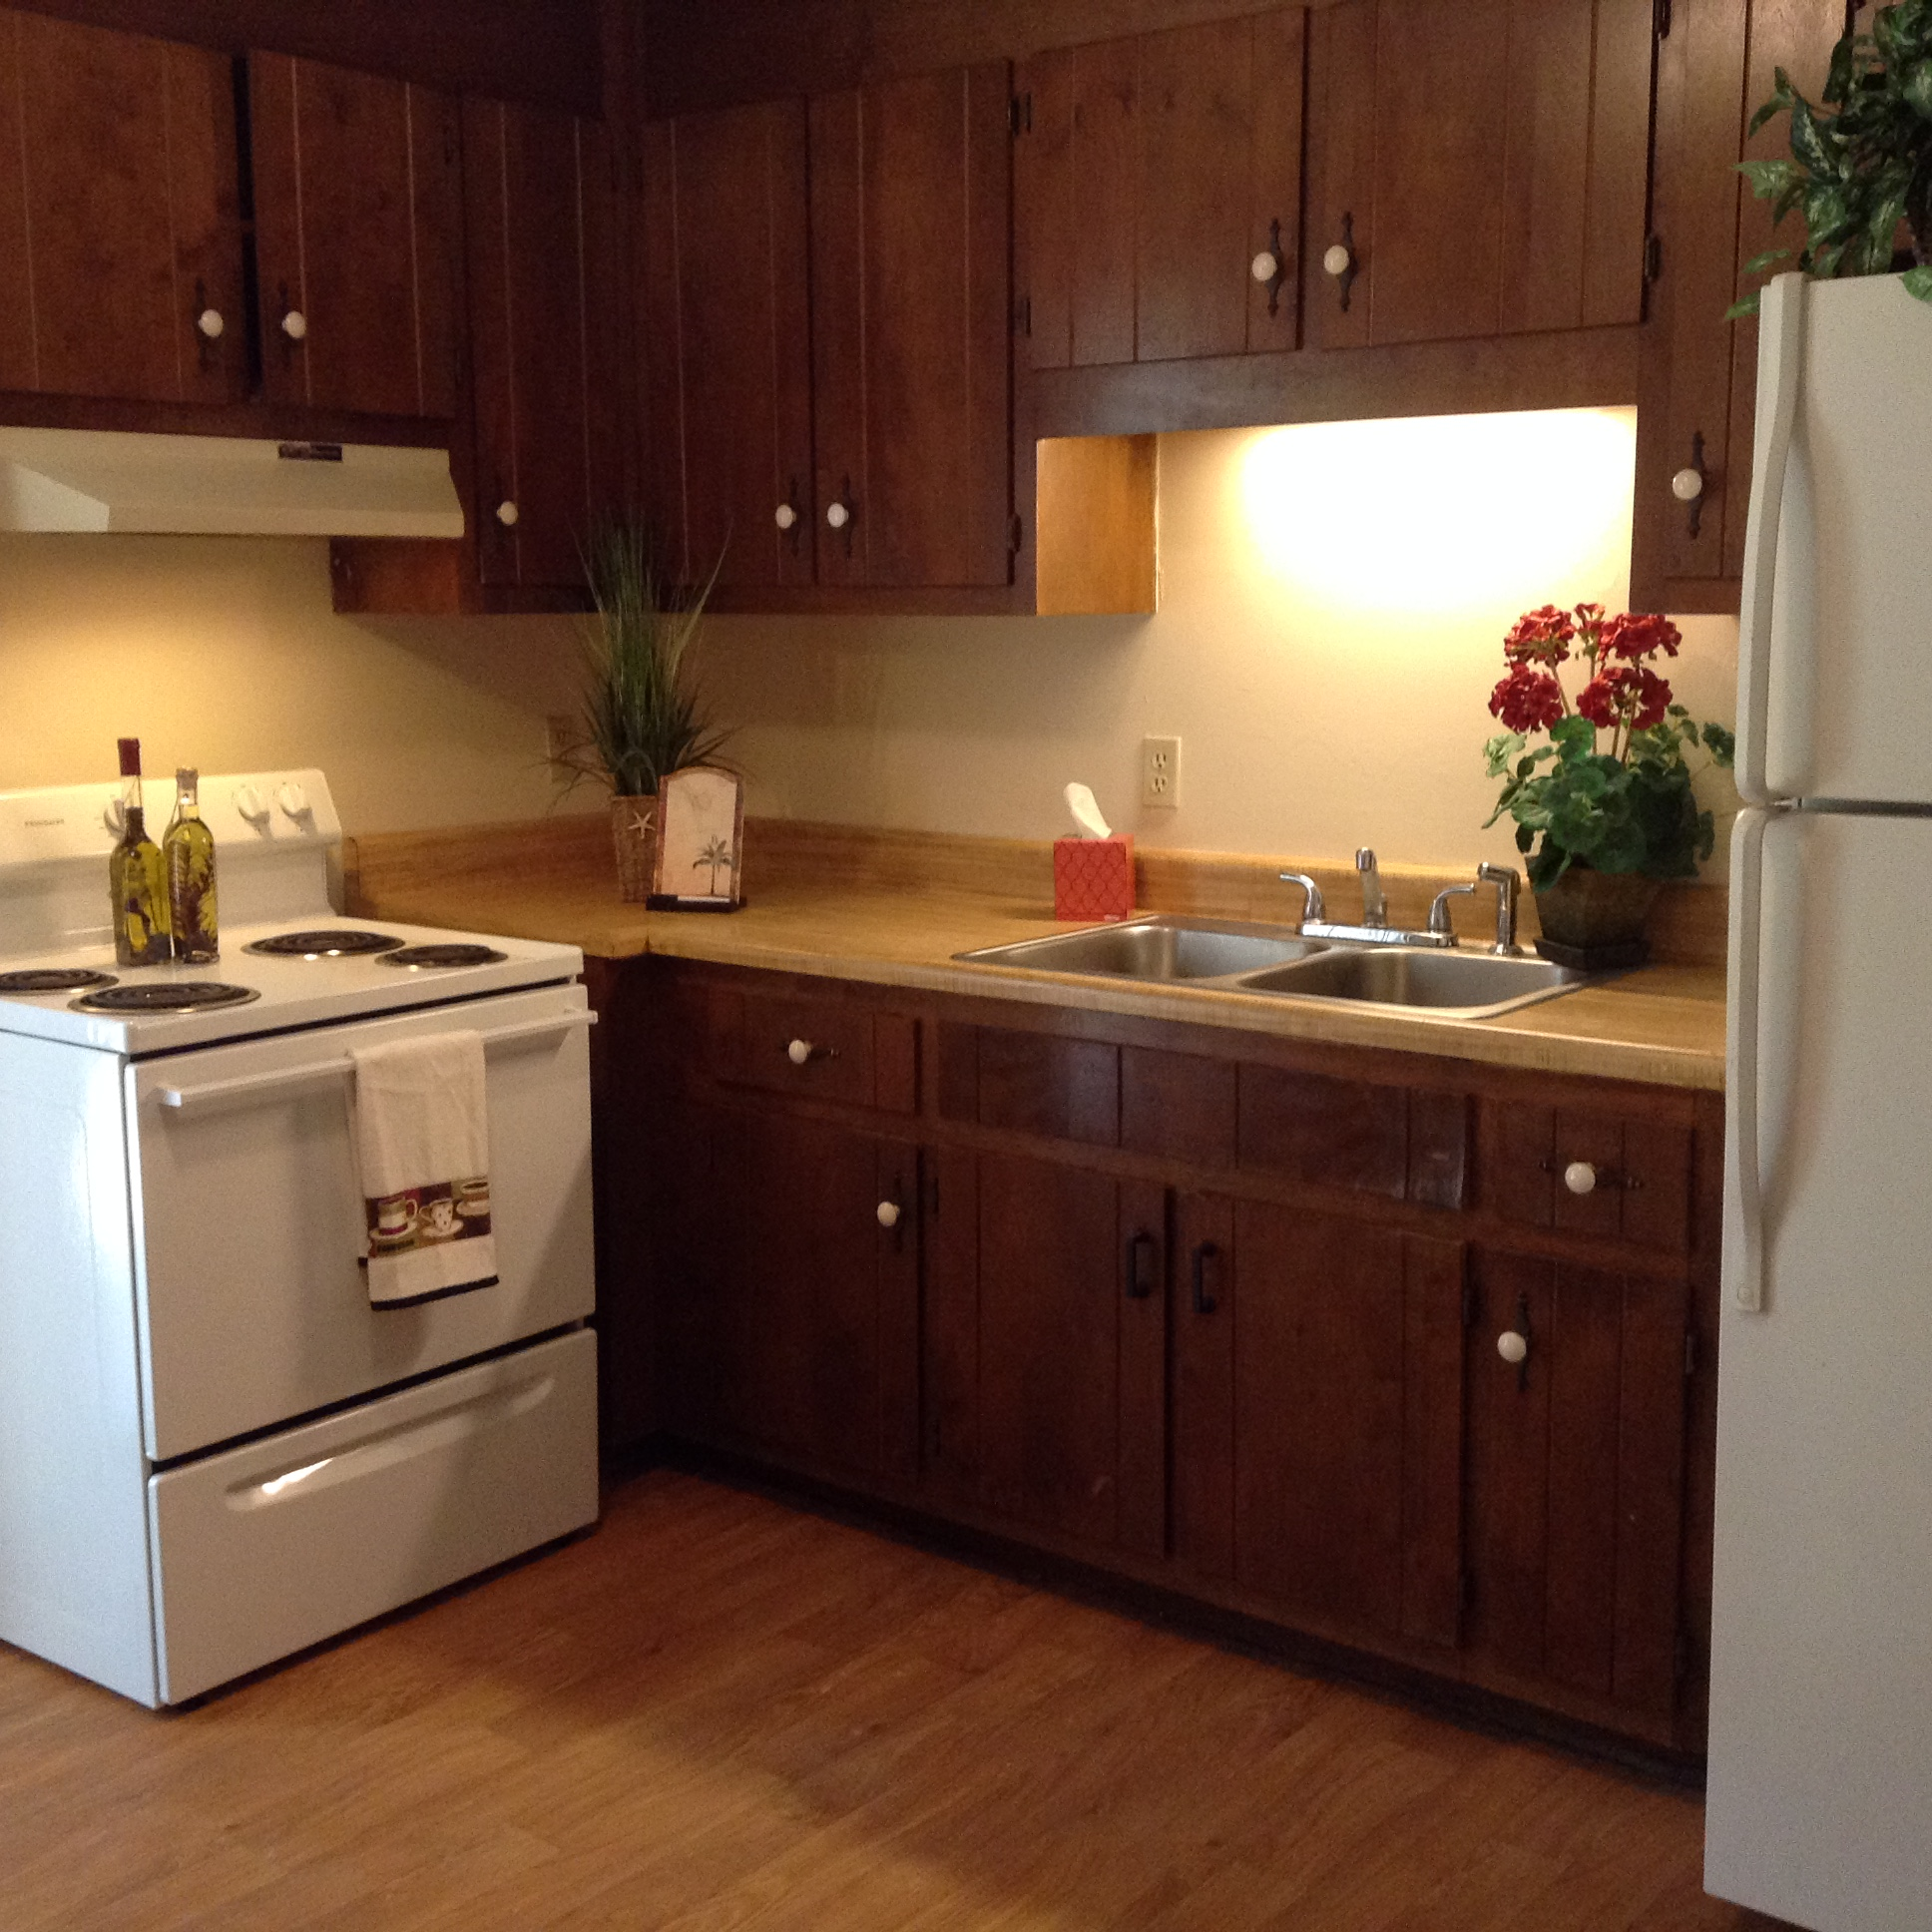 Concord Apartments: Apartments For Rent Colonial Heights, VA